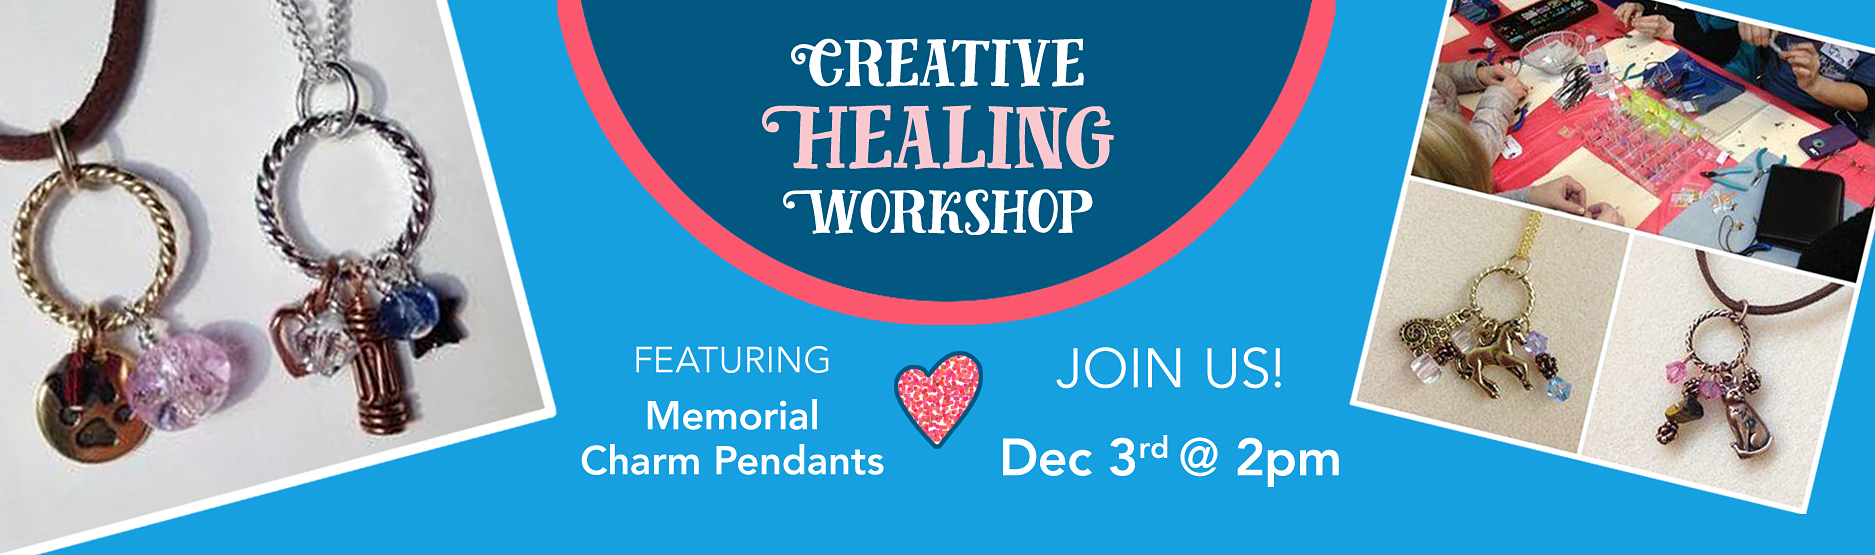 AHELP_CreativeHealingWorkshop_Dec3rd.jpg